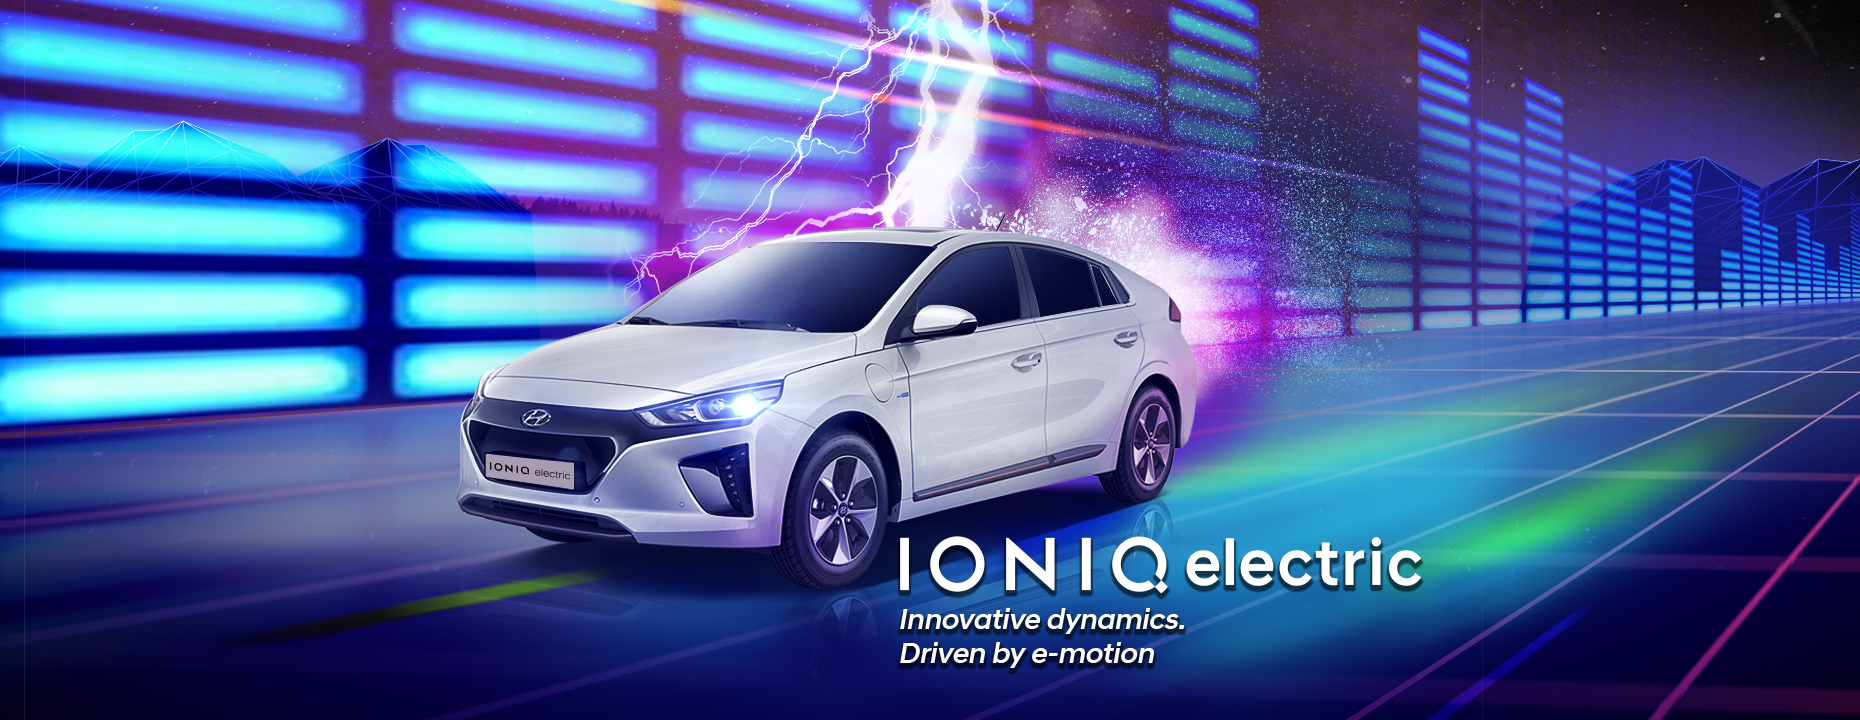 Websitebanner Ioniq